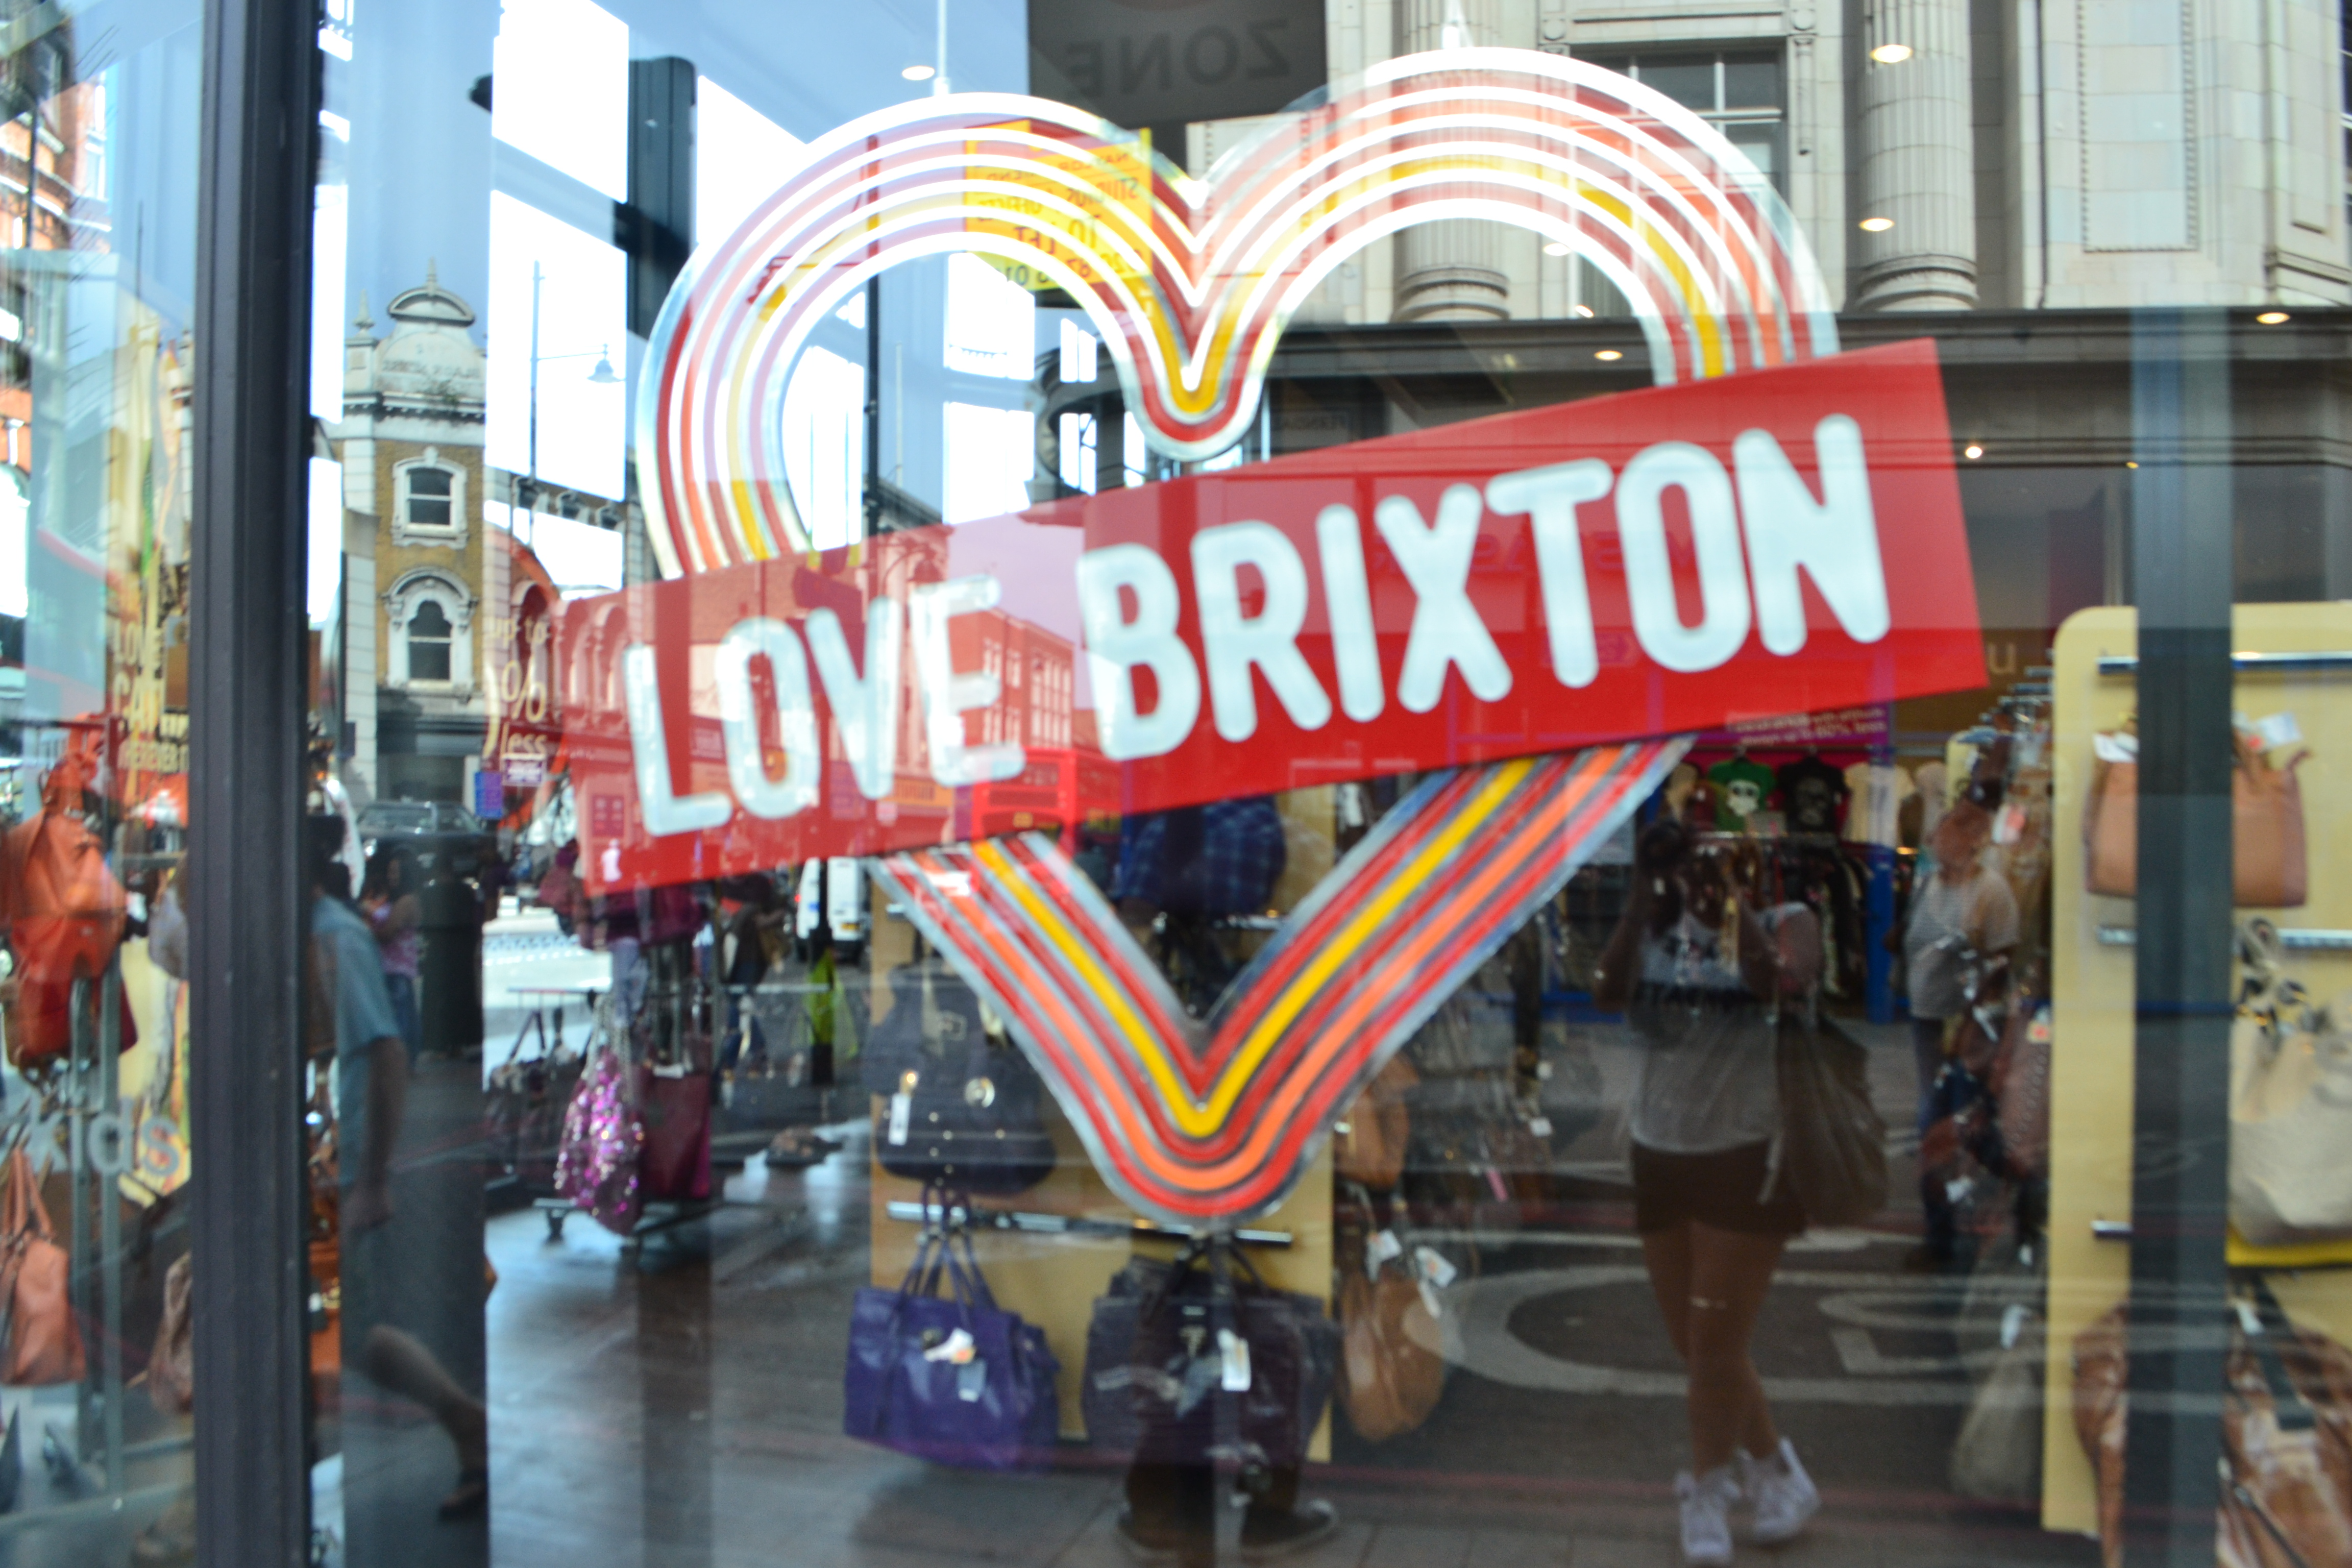 Spend the weekend in Brixton